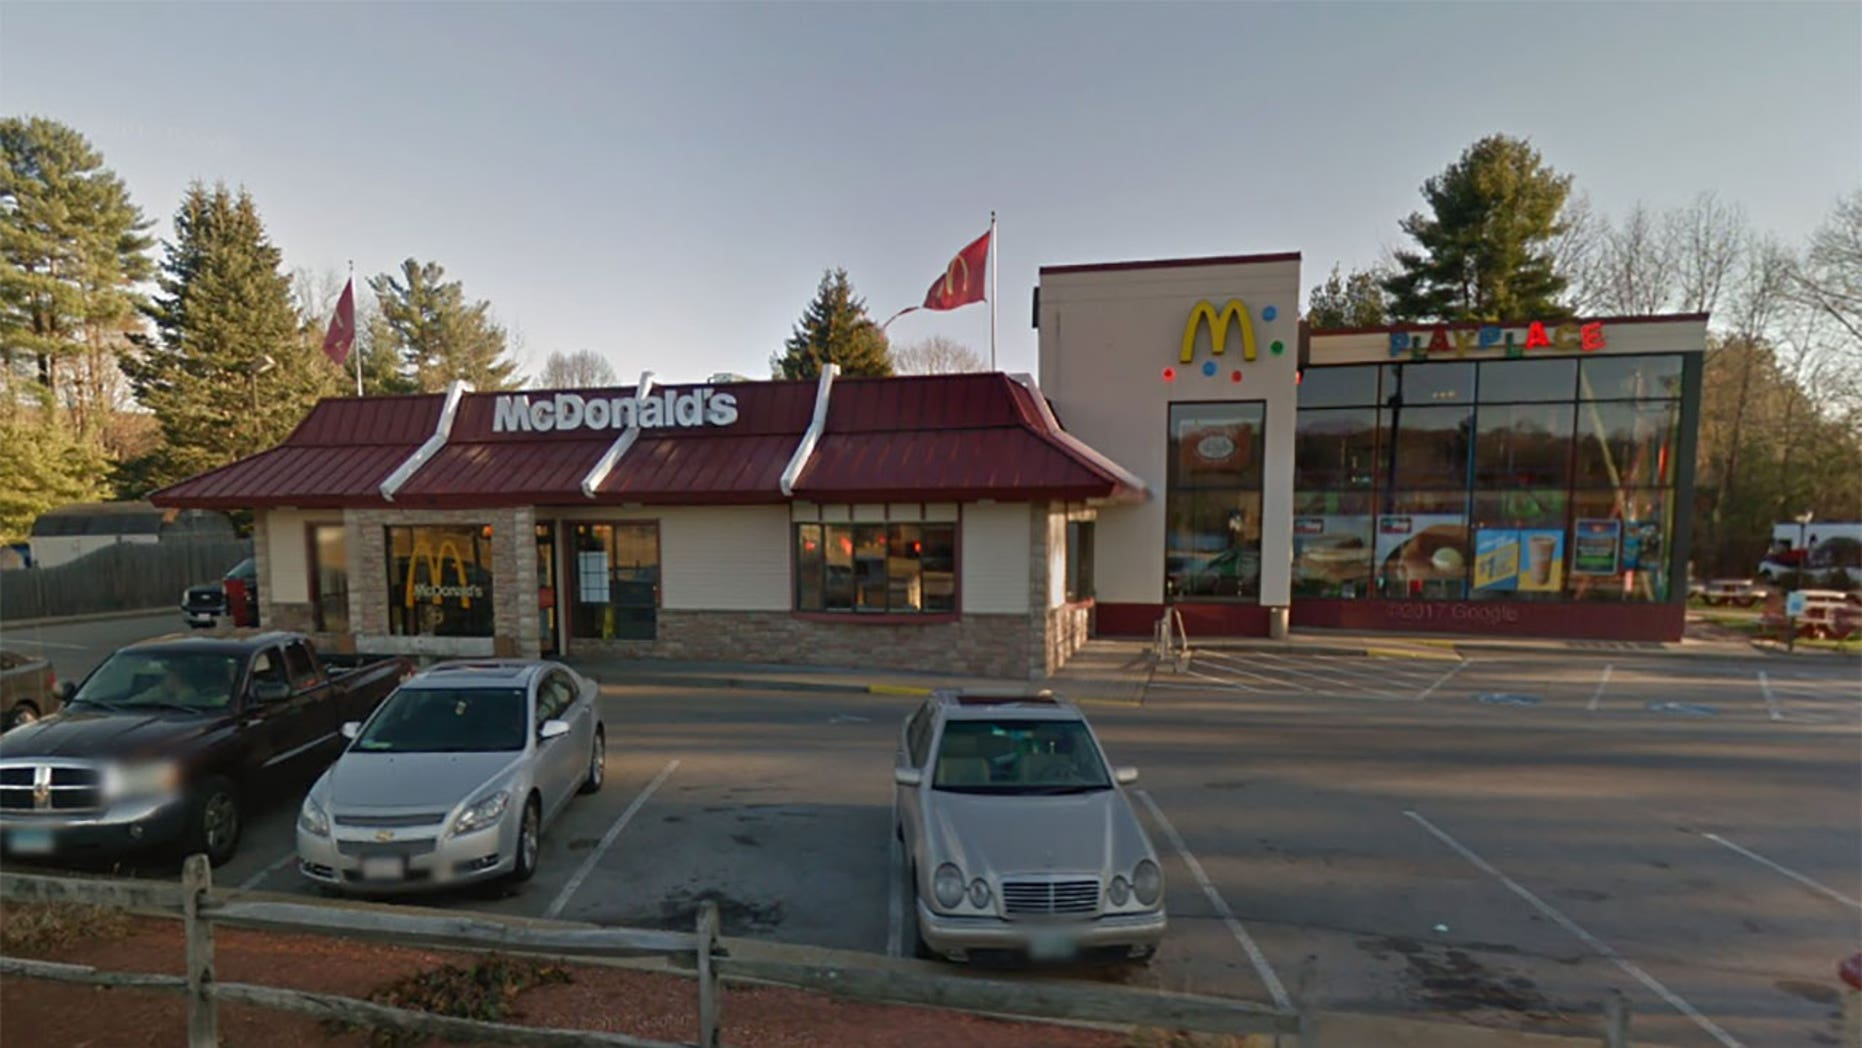 Firefighters responded to McDonald's in Massachusetts after a young girl became stuck in the playground equipment.